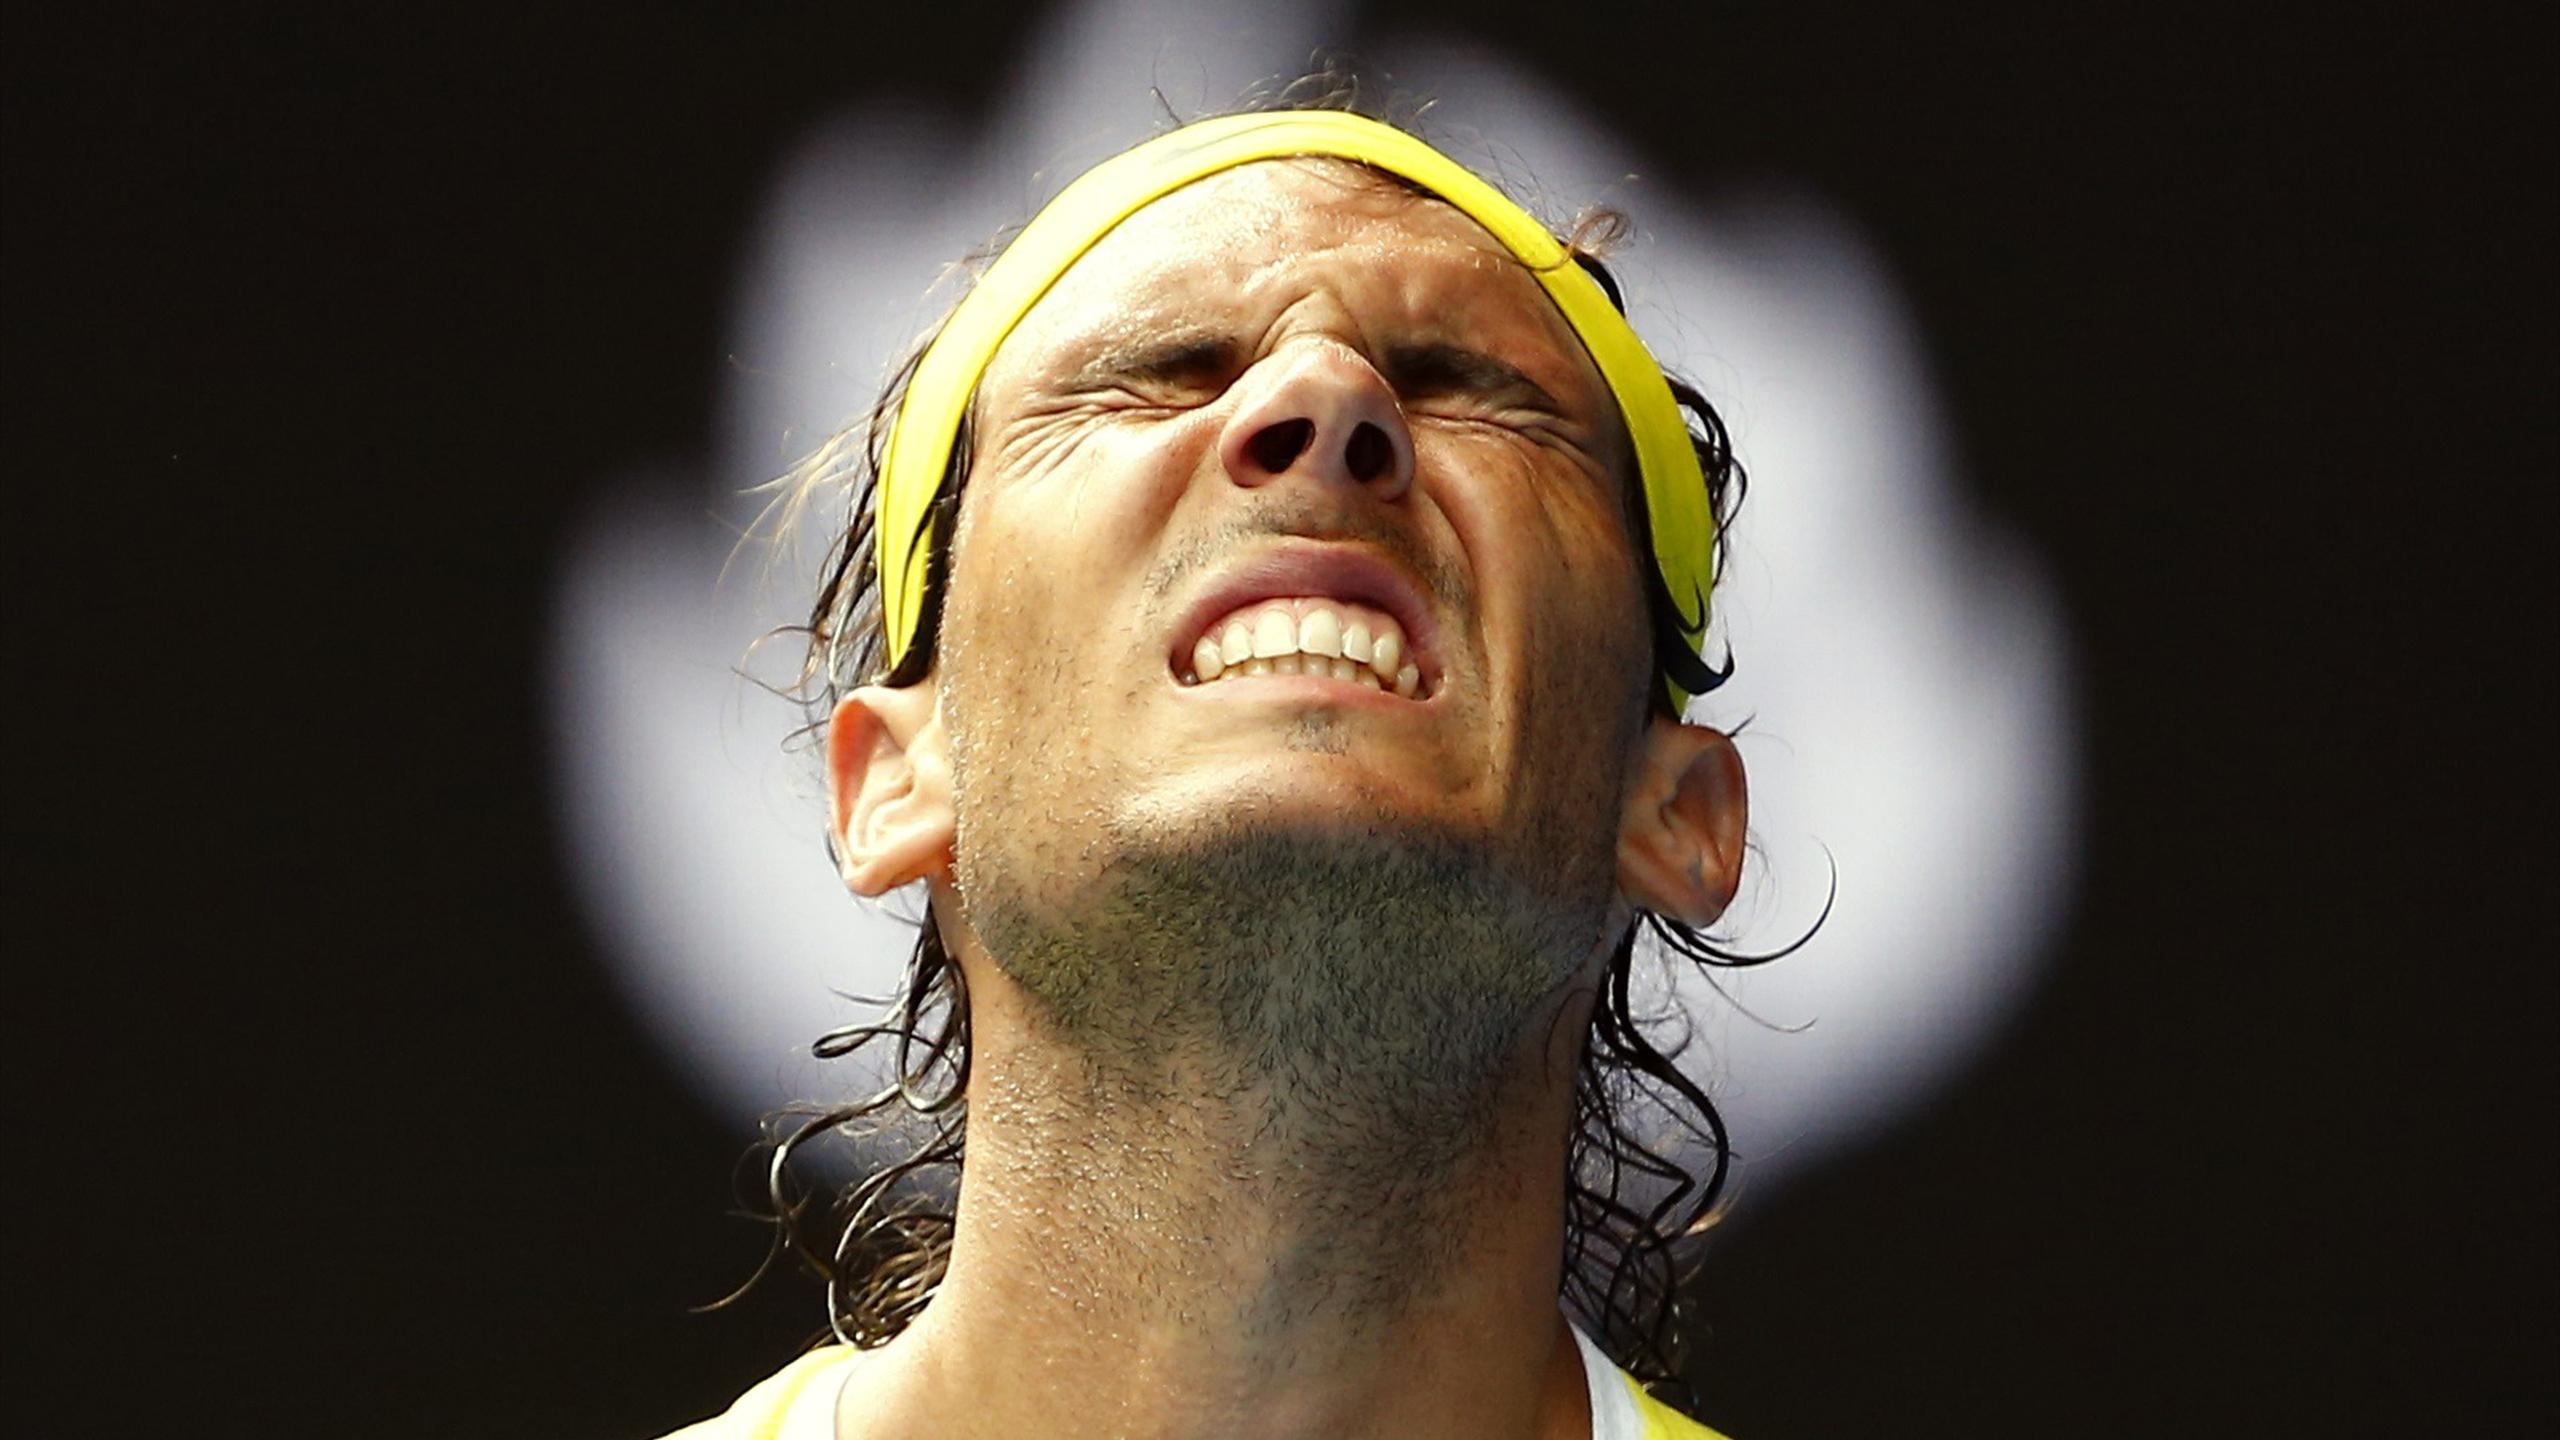 Rafael Nadal loses to Fernando Verdasco at the Australian Open